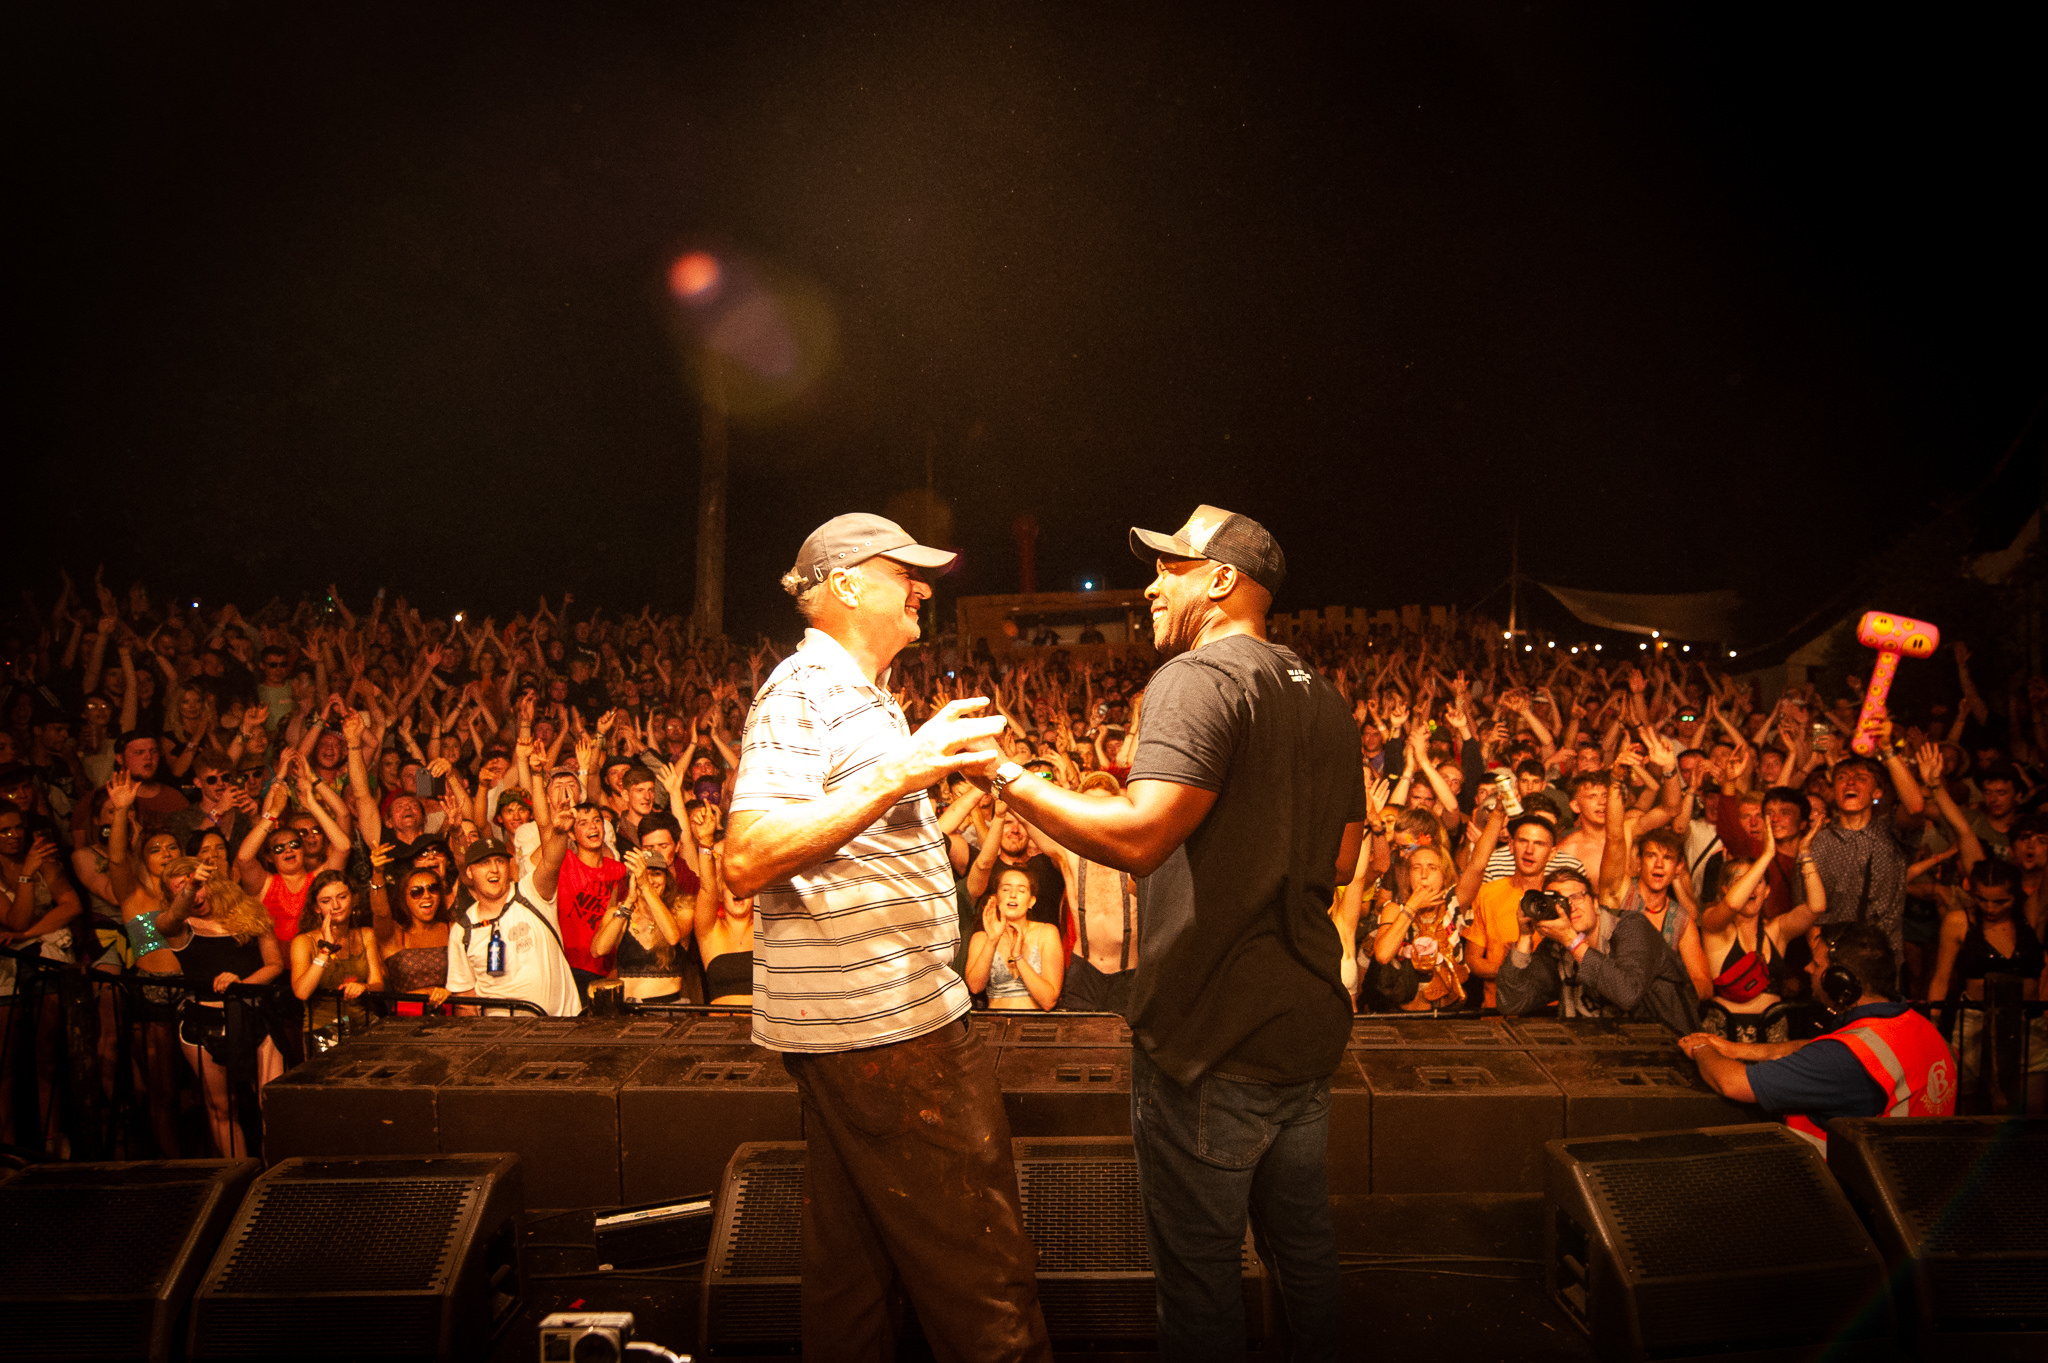 DJ Marky and Noz (Pete) at Nozstock 2018 - credit Dan Barker